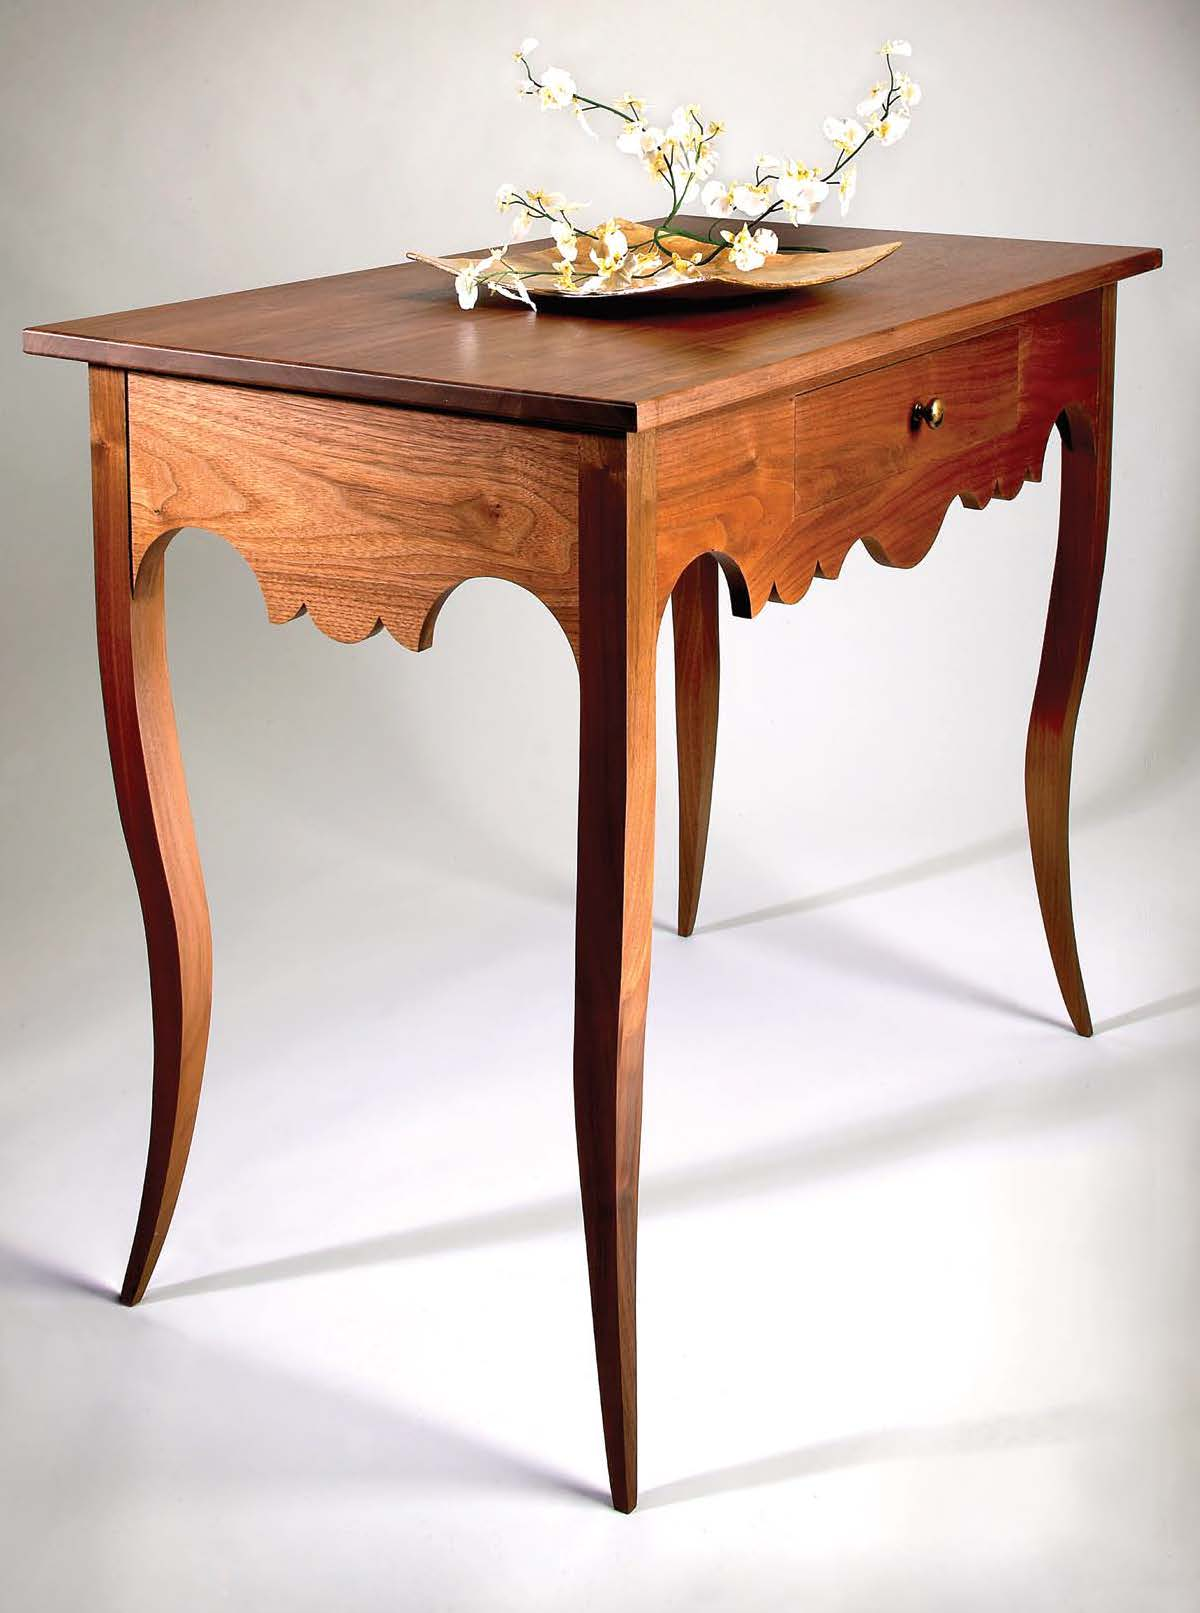 Christopher Schwarz Built This Lovely And Delicate Creole Table For Our  February 2007 Issue (an Issue That Also Includes A Nice Greene U0026 Greene  Side Table, ...